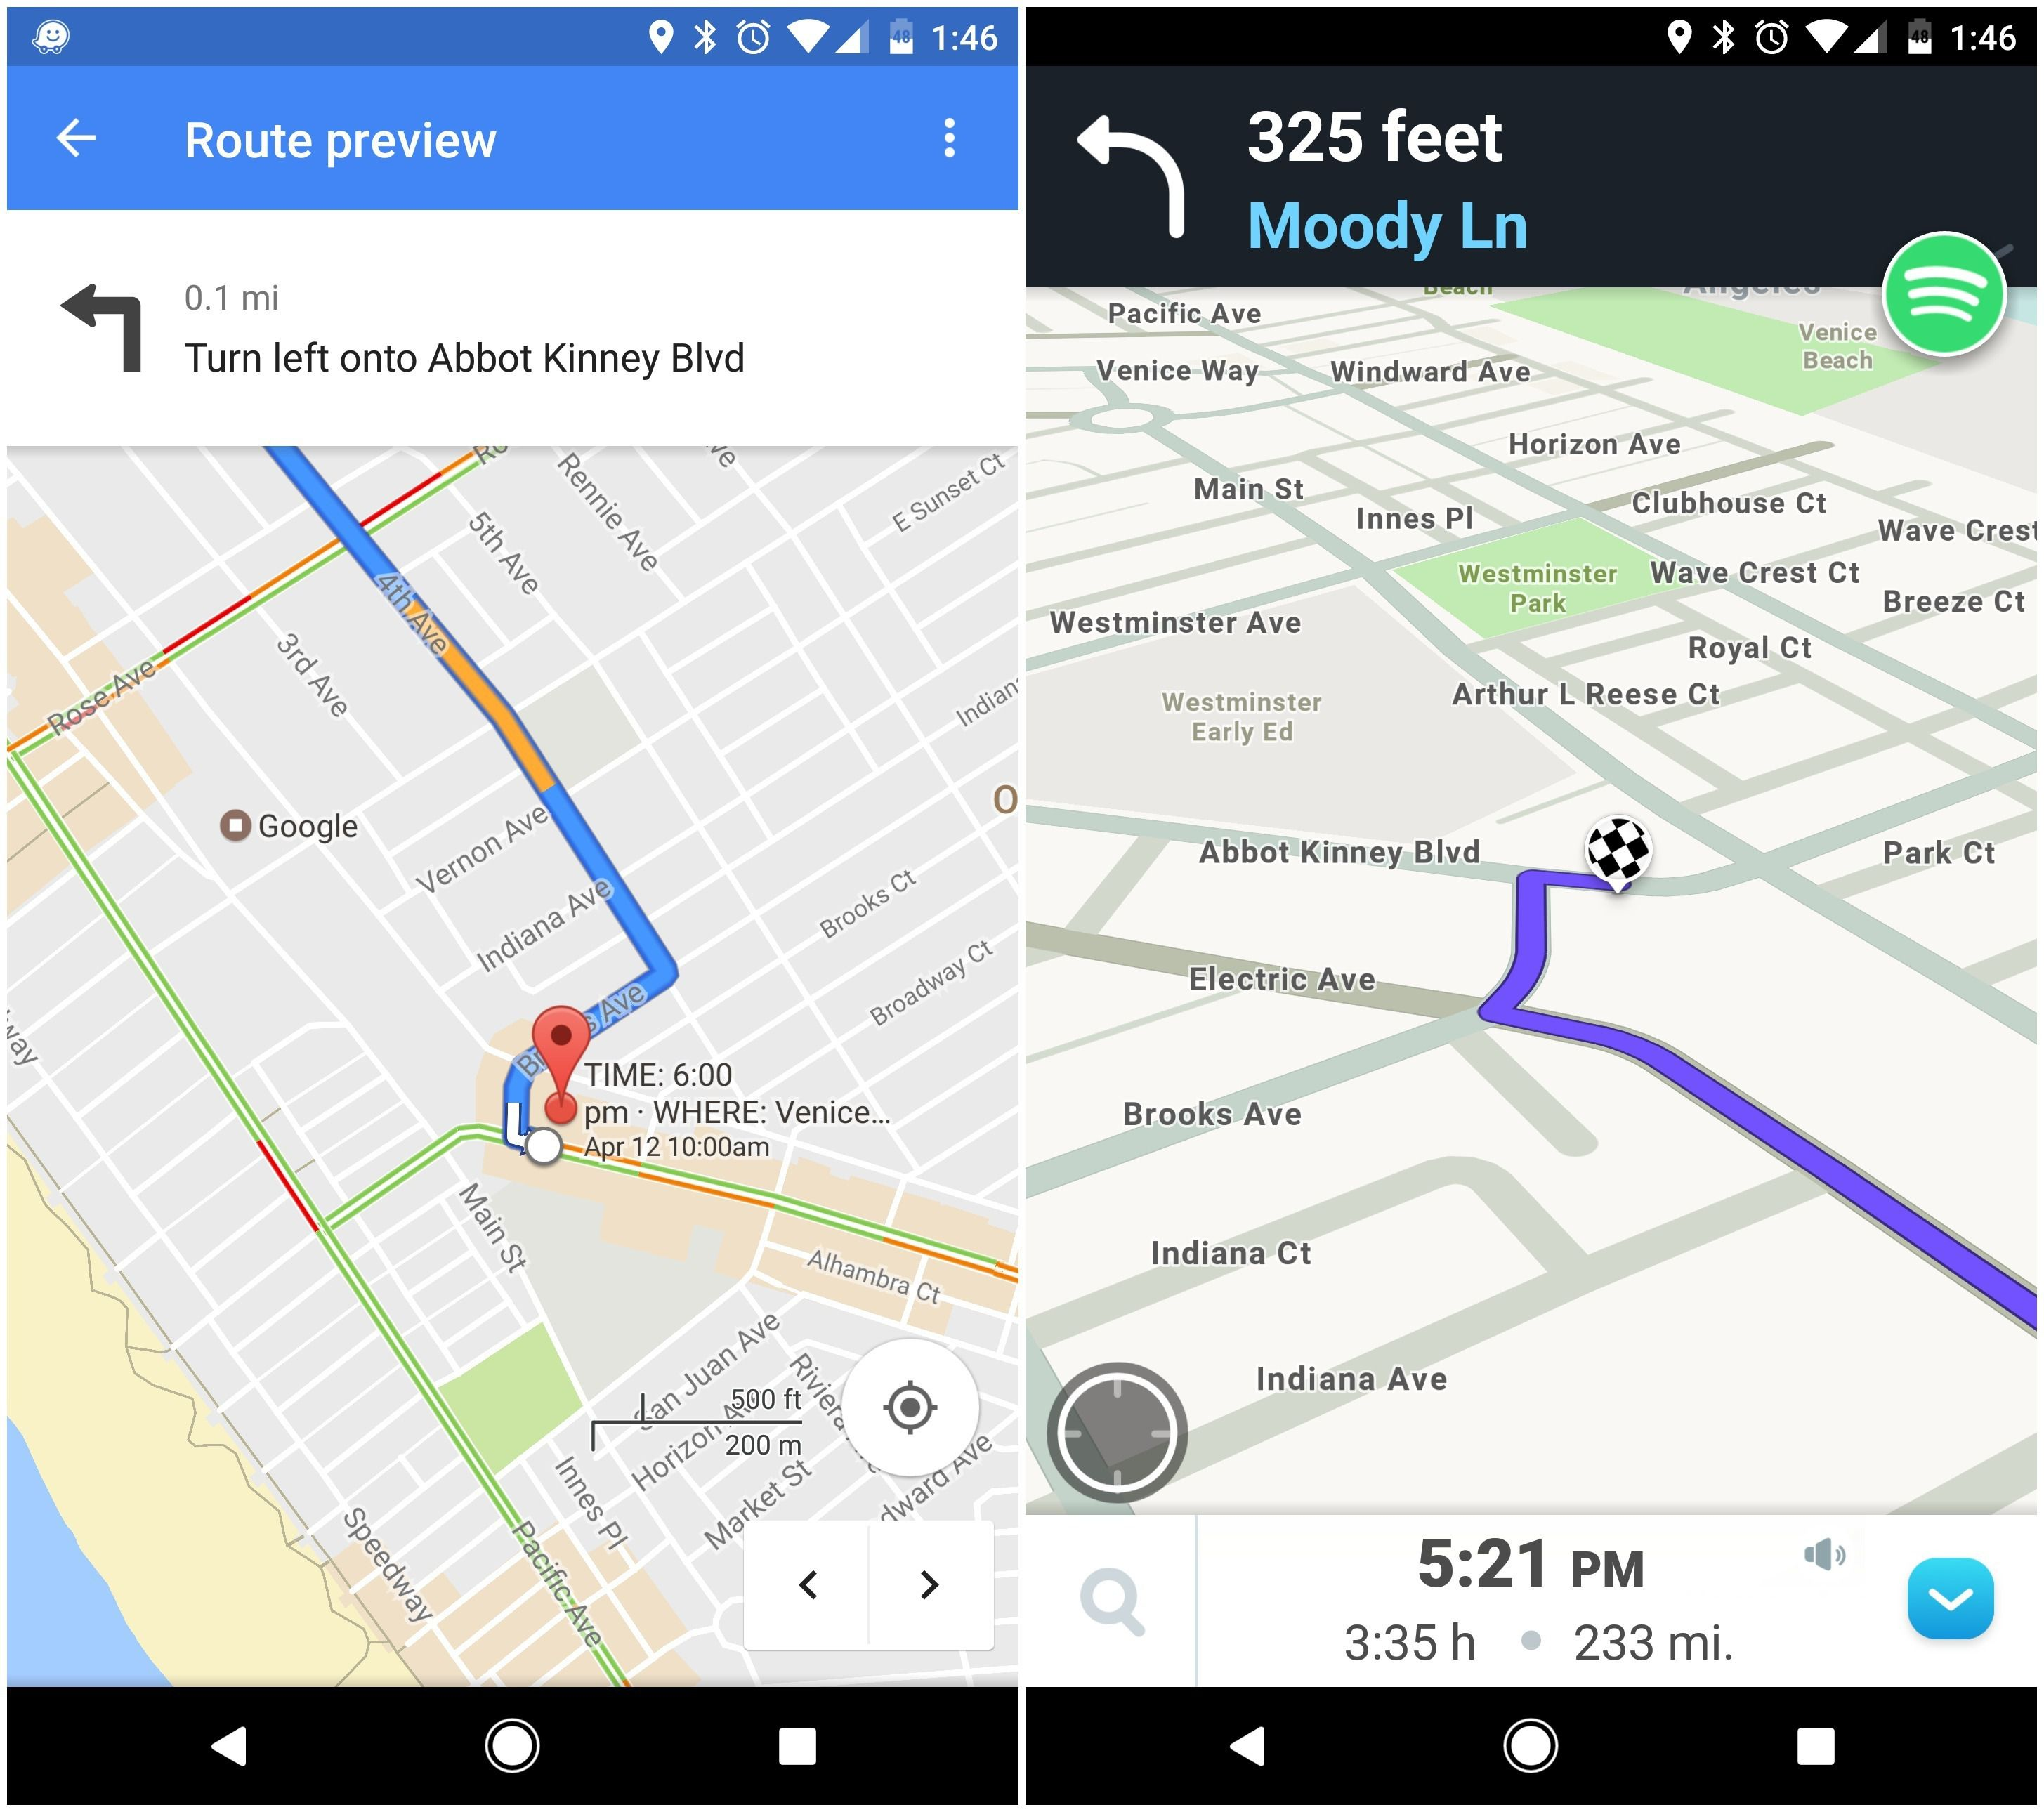 9 Best Android apps should have in 2018 - Useful Apps (9)